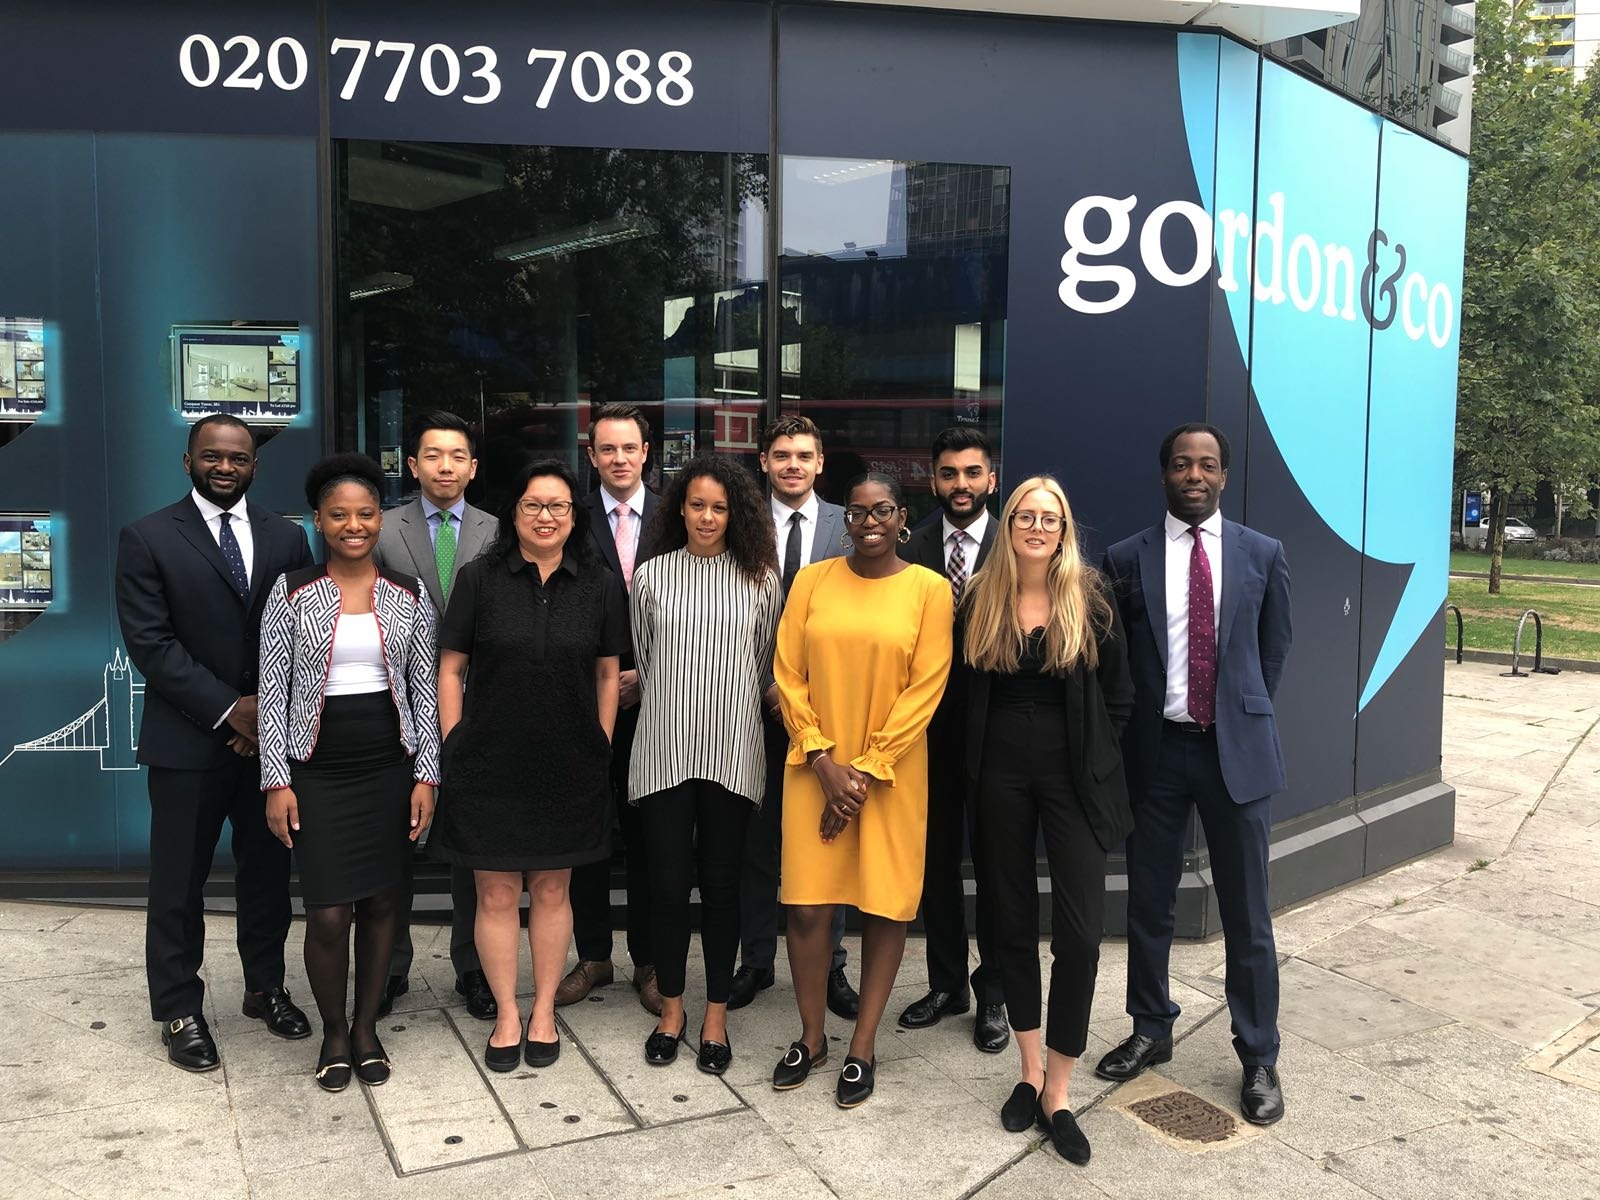 Gordon & Co Elephant & Castle Team